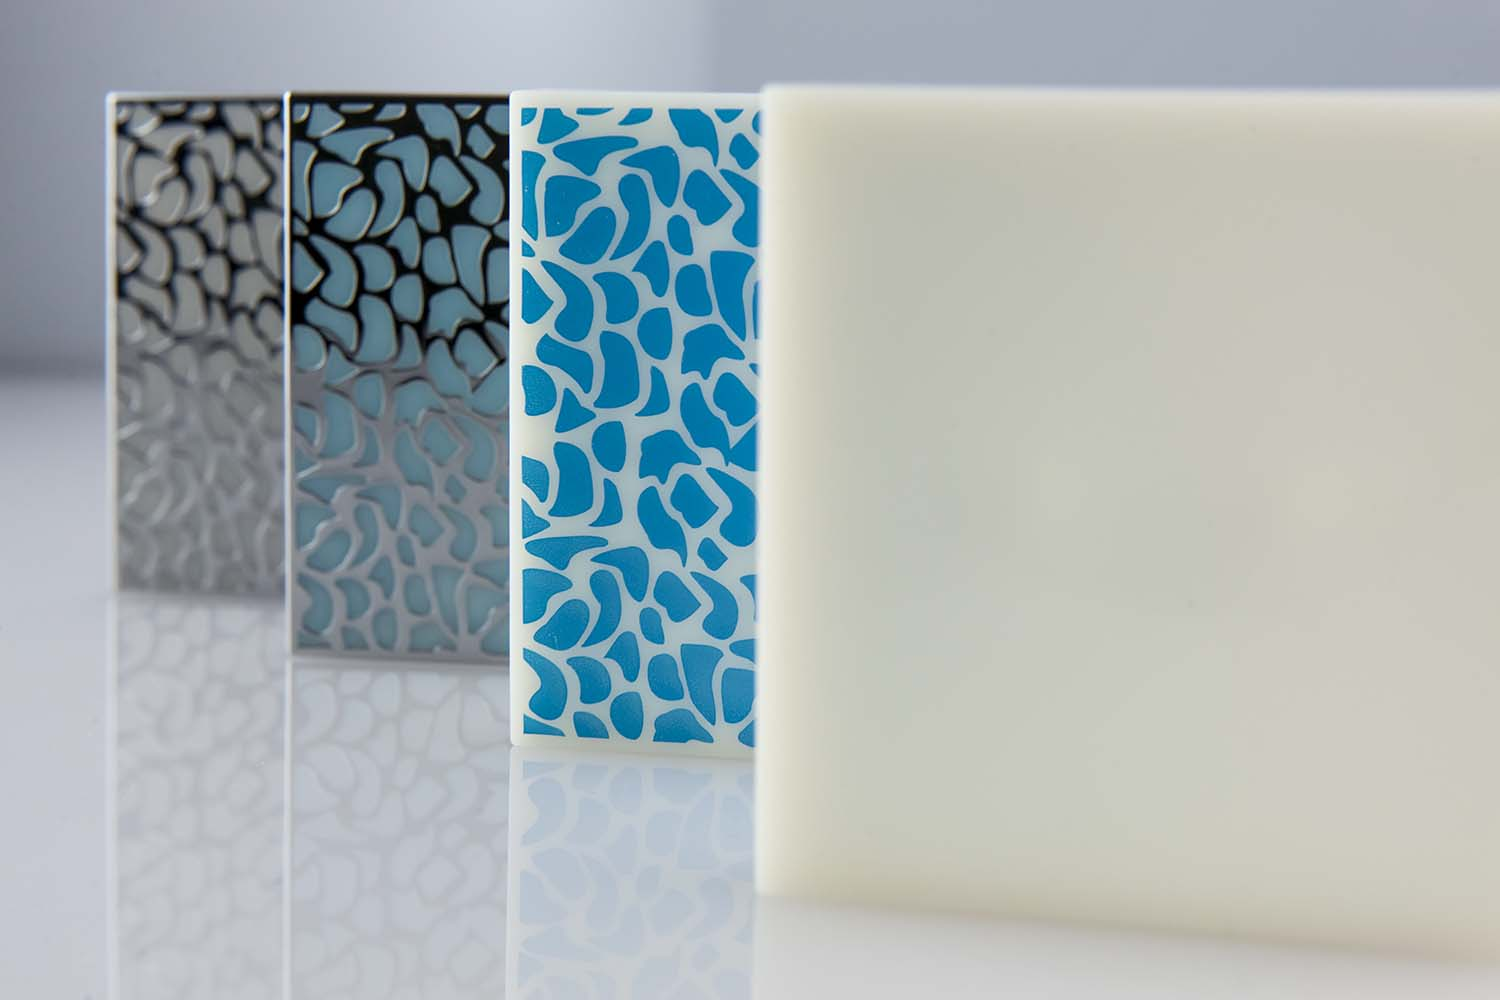 Electro-plated-plastic-finishes-Selective-electroplating-Finished-square-3